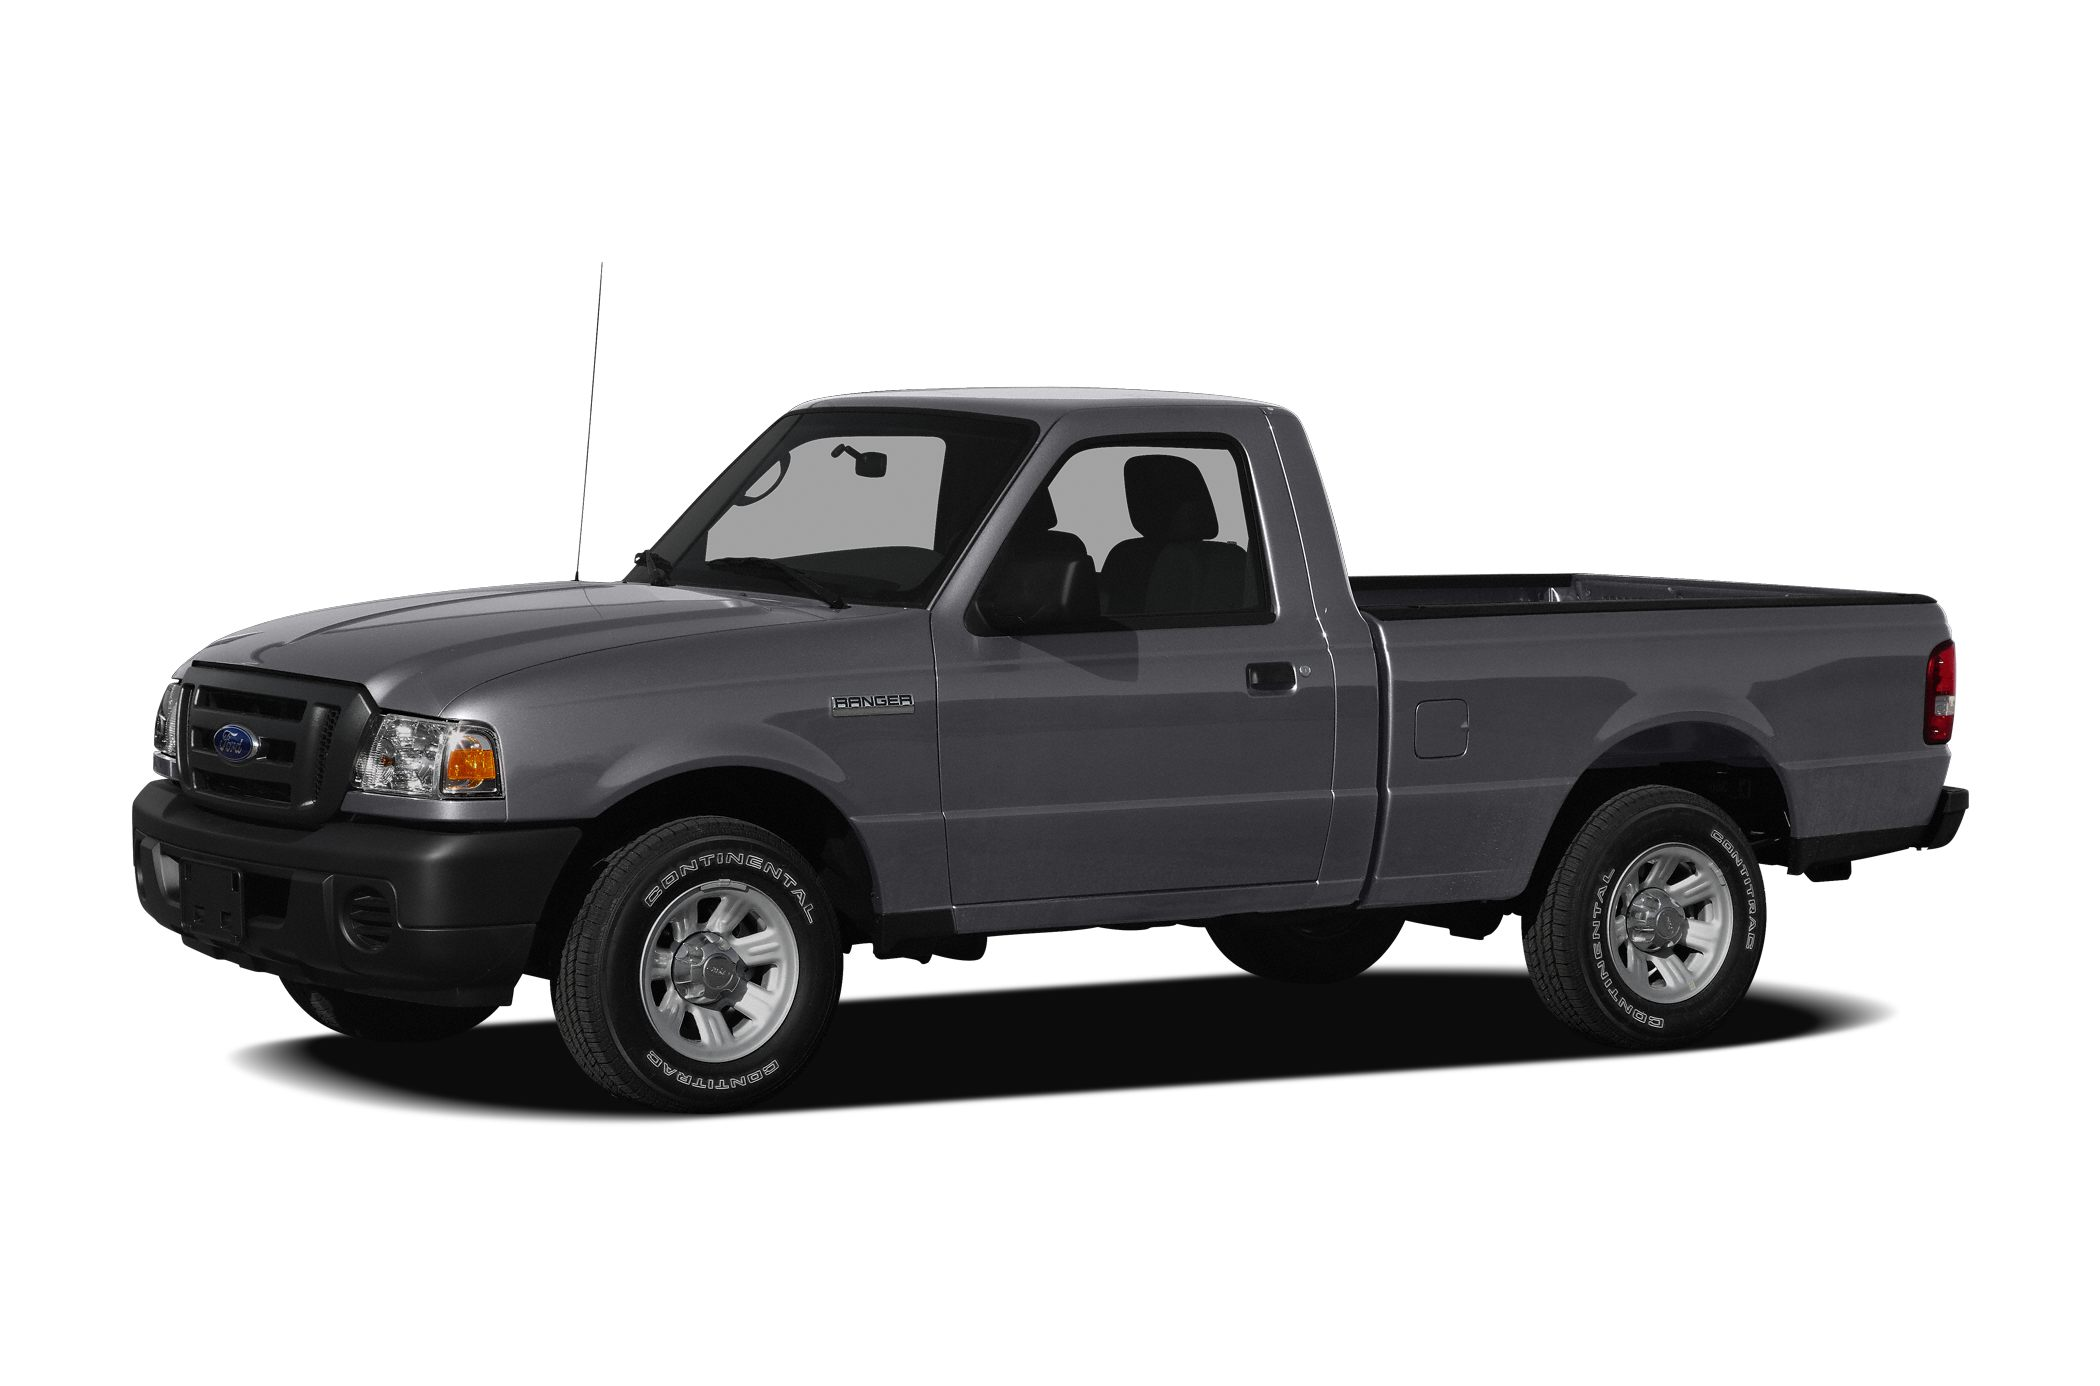 2011 Ford Ranger XL Regular Cab Pickup for sale in Hillsboro for $9,995 with 133,268 miles.